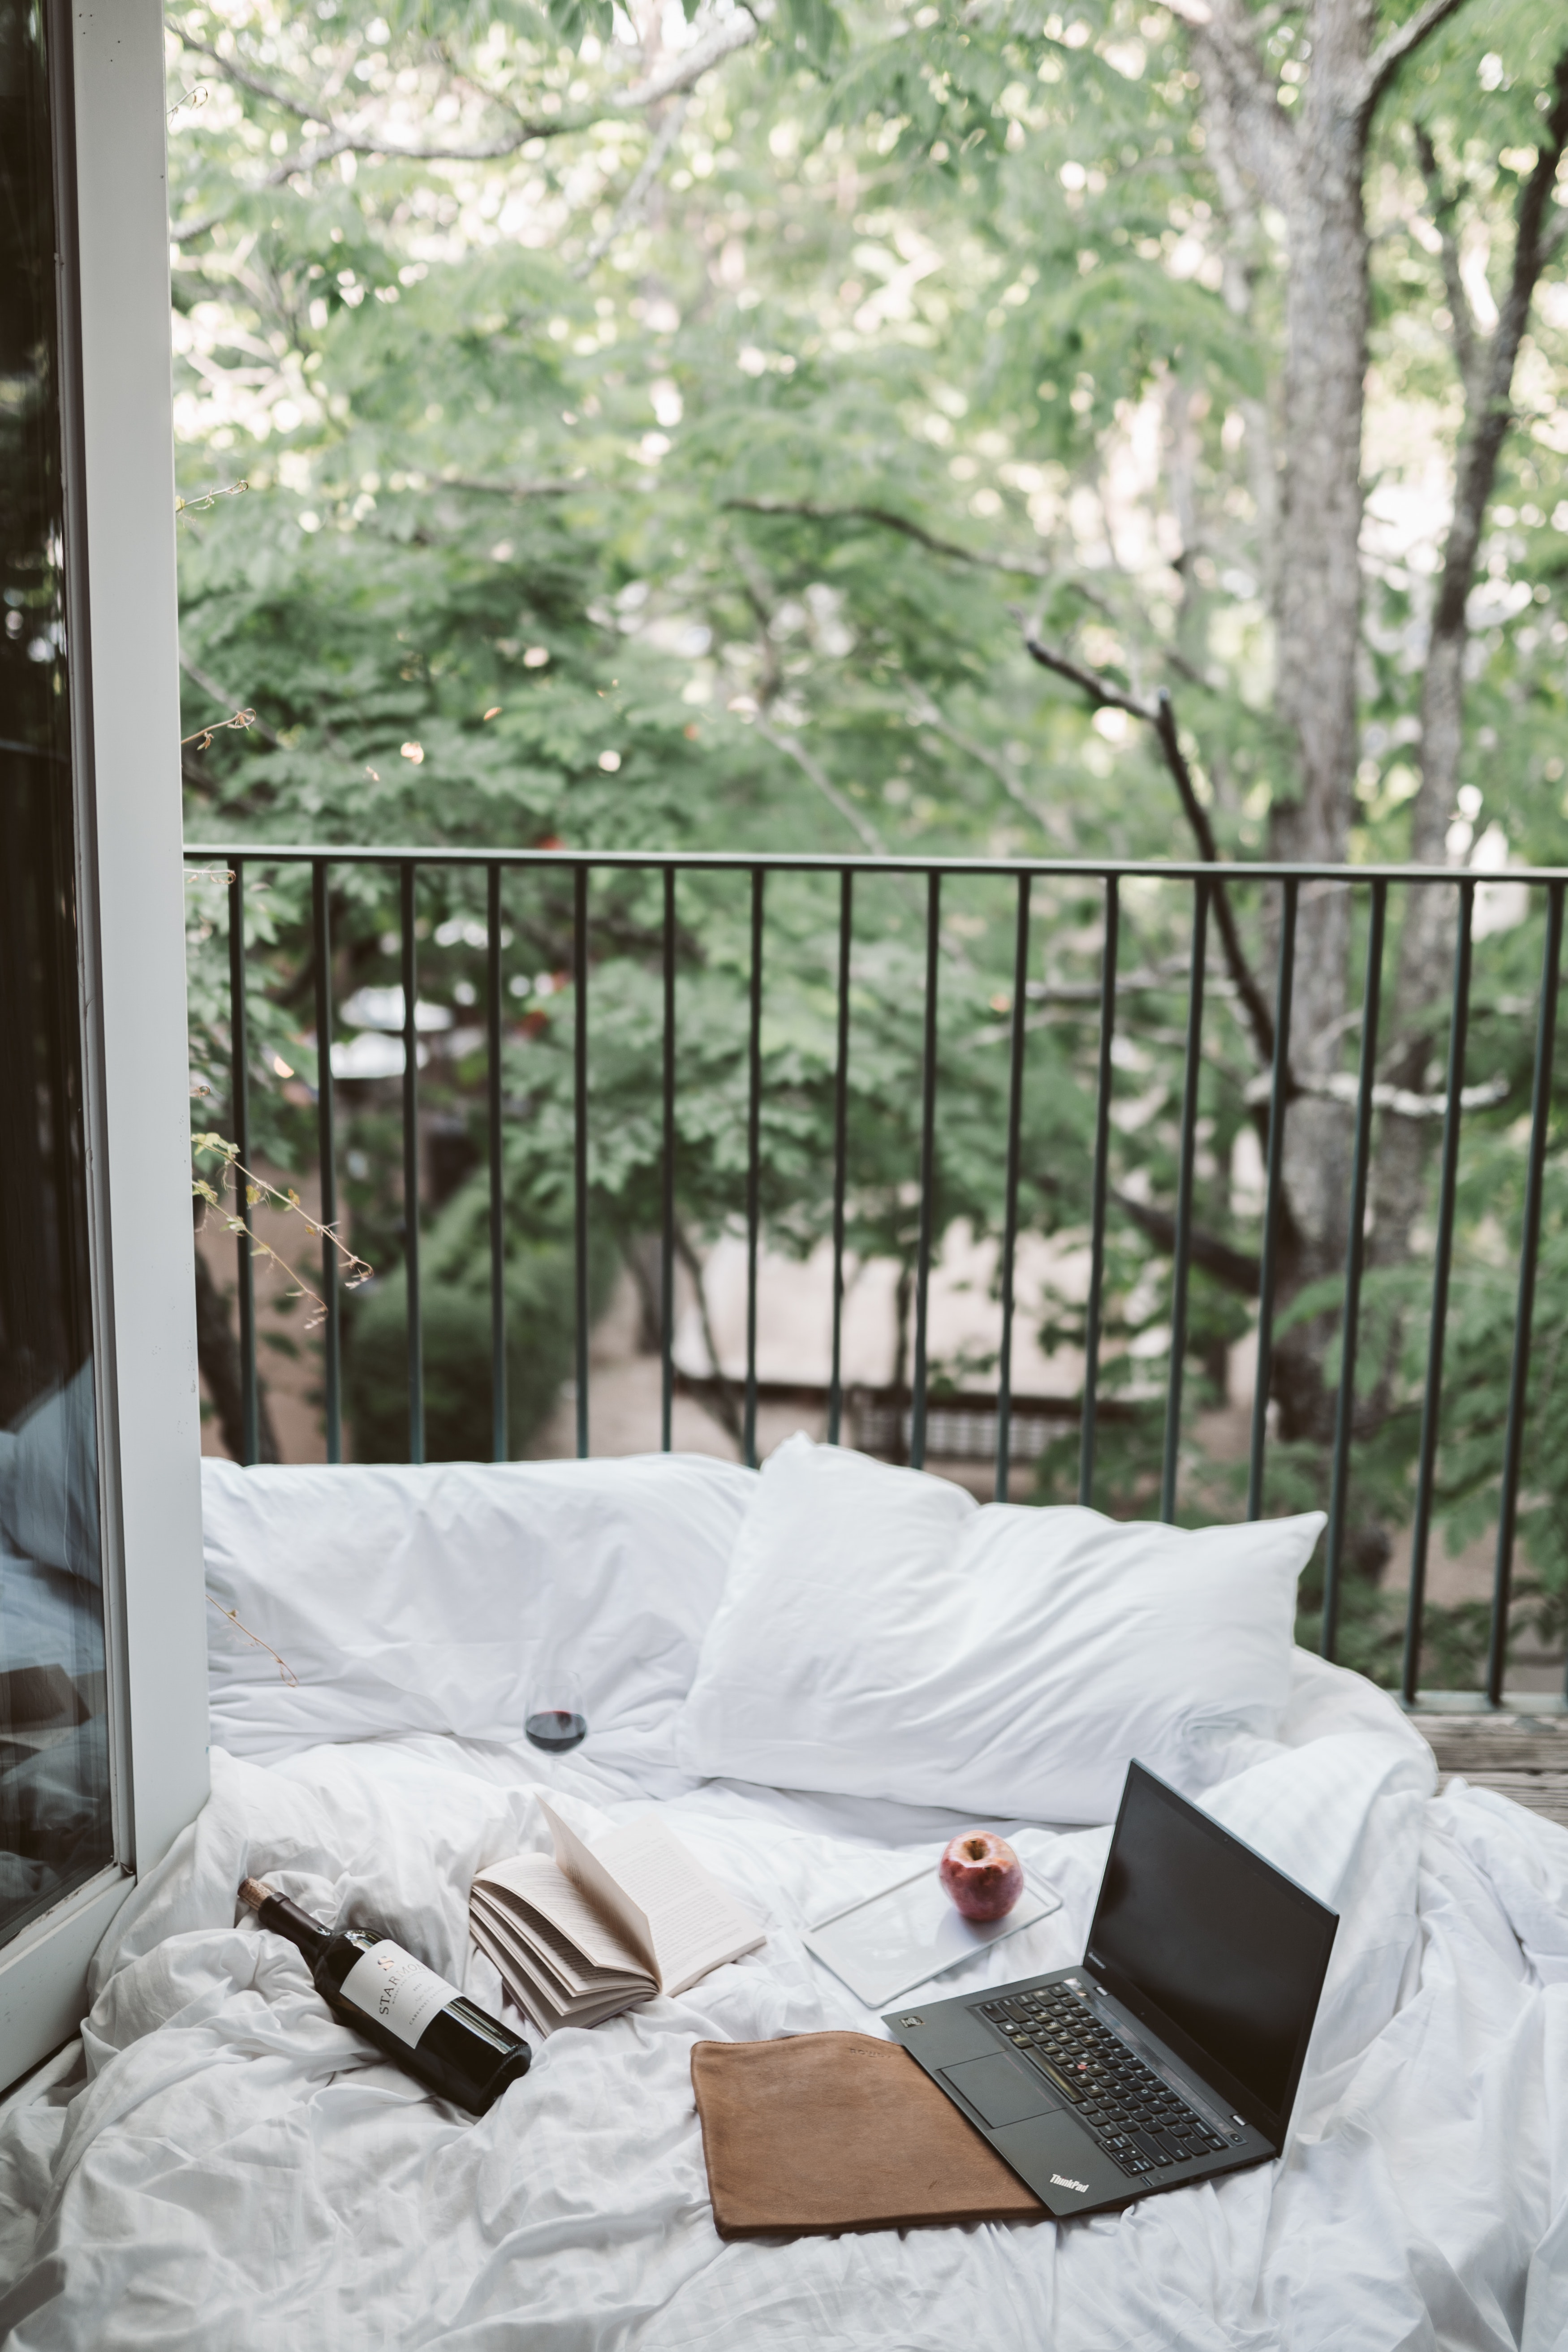 laptop-on-bed-near-the-balcony-4099388